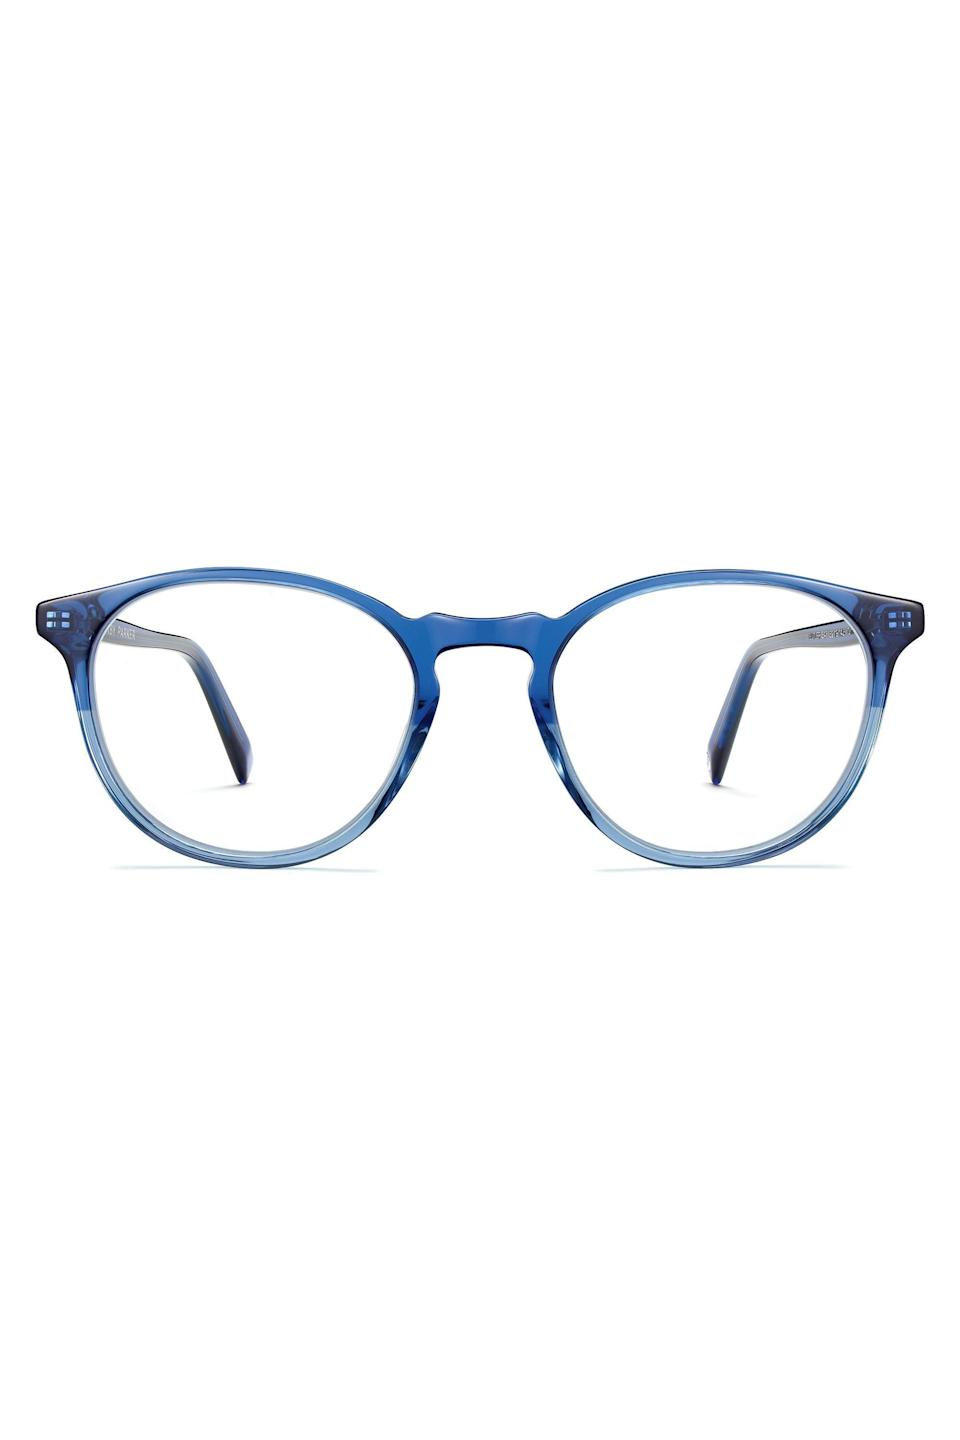 """<p><strong>Warby Parker</strong></p><p>warbyparker.com</p><p><strong>$95.00</strong></p><p><a href=""""https://go.redirectingat.com?id=74968X1596630&url=https%3A%2F%2Fwww.warbyparker.com%2Feyeglasses%2Fwomen%2Fbutler%2Fshoreline-fade&sref=https%3A%2F%2Fwww.elle.com%2Ffashion%2Fshopping%2Fg33955592%2Fgifts-for-book-lovers%2F"""" rel=""""nofollow noopener"""" target=""""_blank"""" data-ylk=""""slk:Shop Now"""" class=""""link rapid-noclick-resp"""">Shop Now</a></p><p>Their eyes need a little love. </p>"""